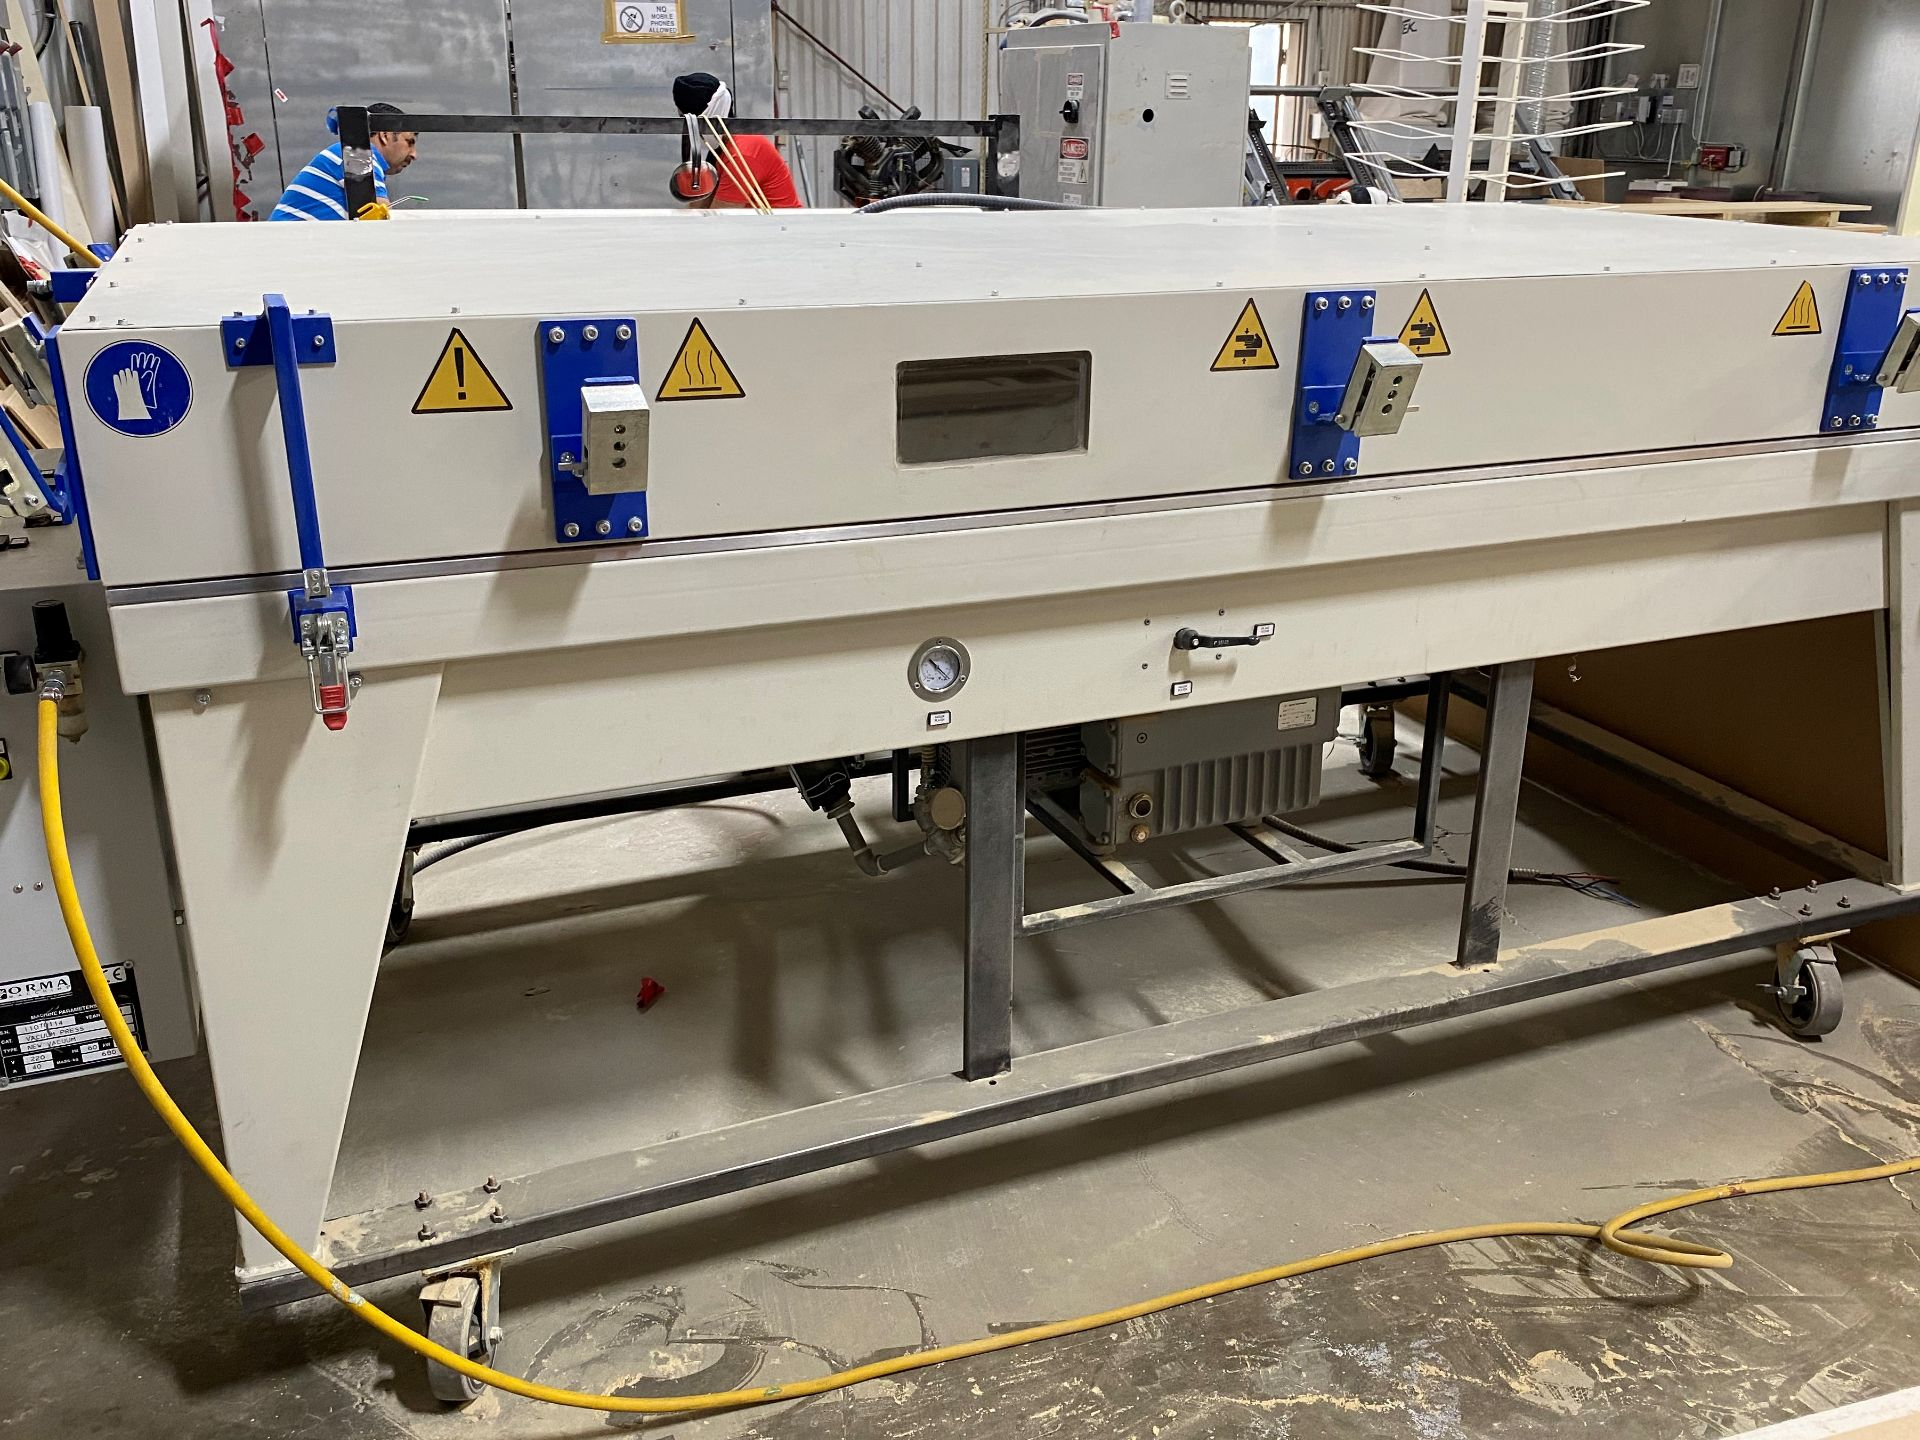 "'14 ORMA 11070114 VACUUM PRESS, 9' X 52"", 220V, 60HZ, 9 KW"